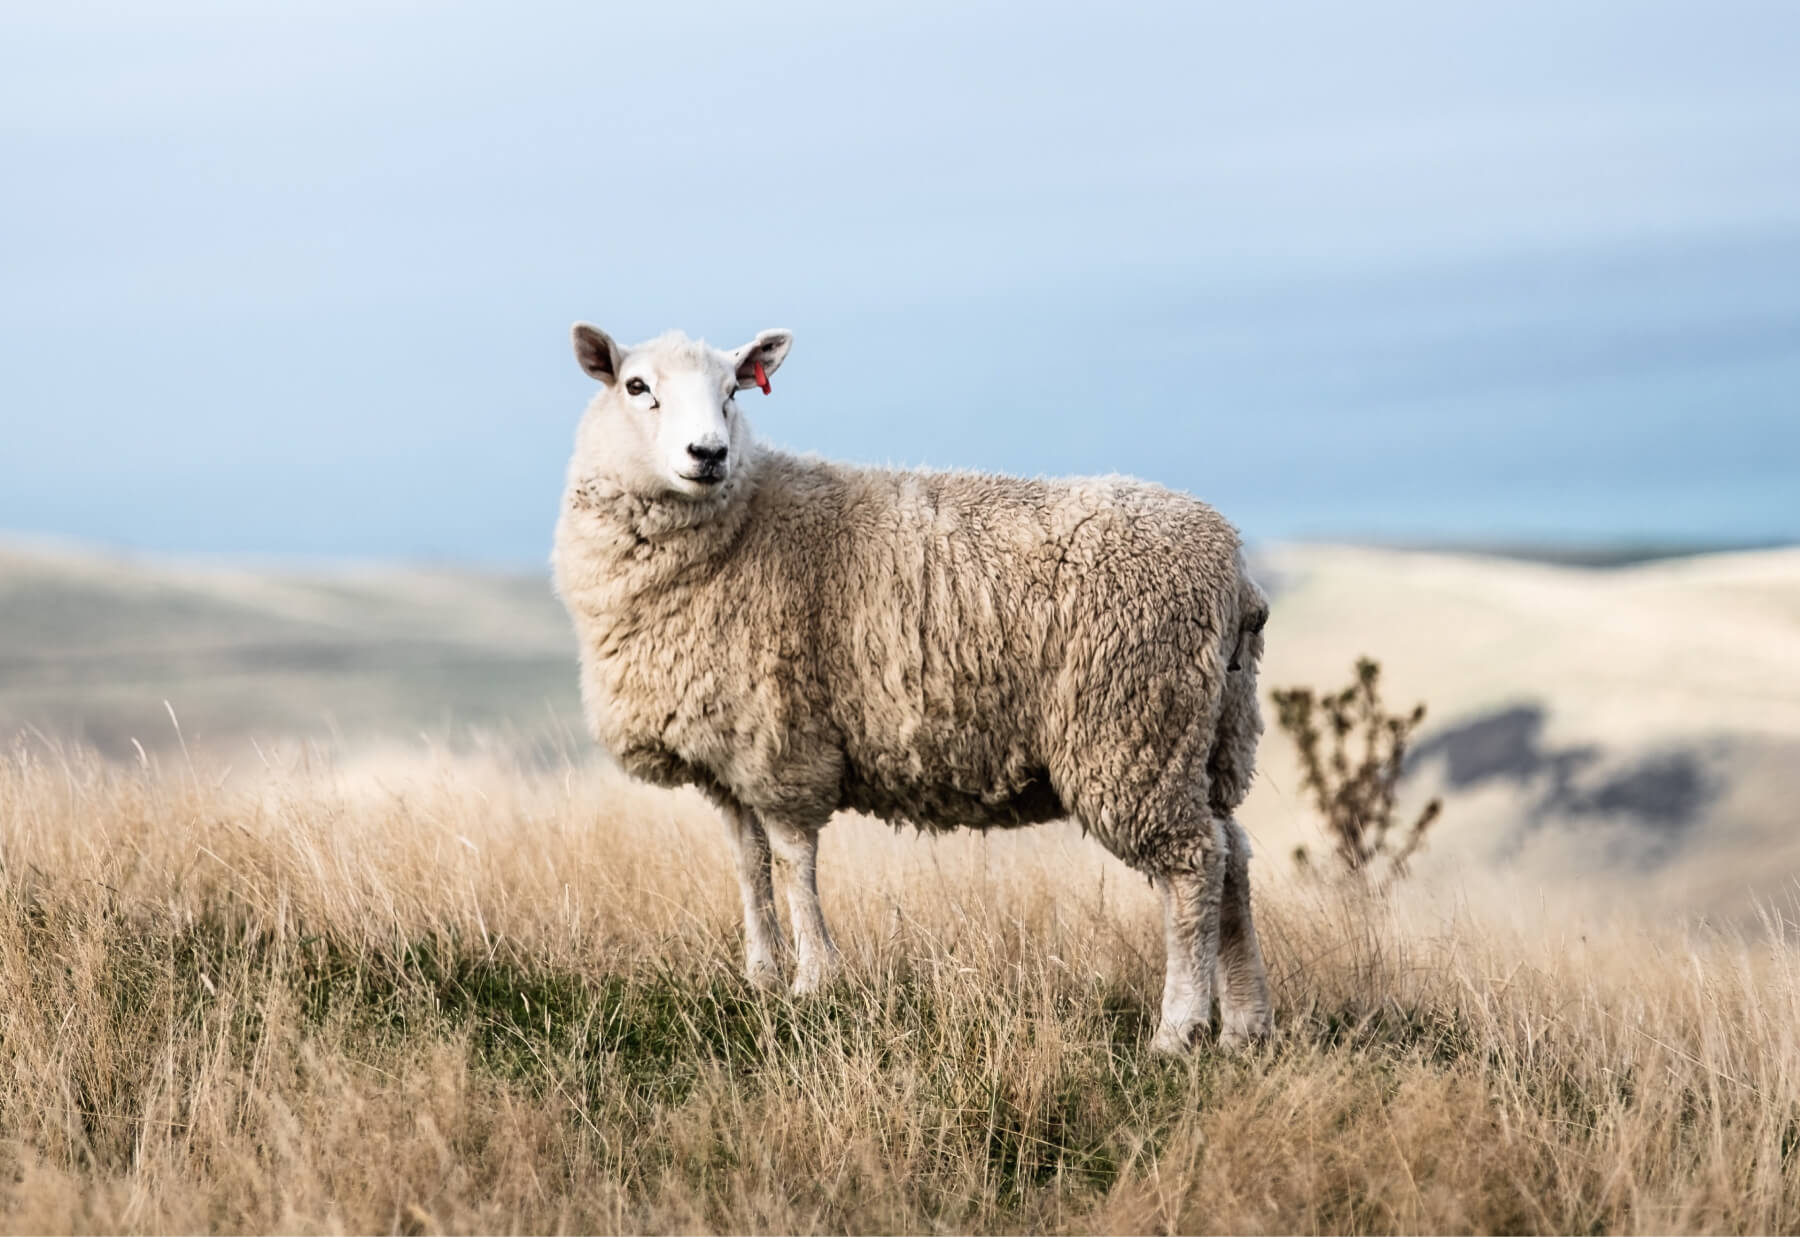 Photo of a sheep